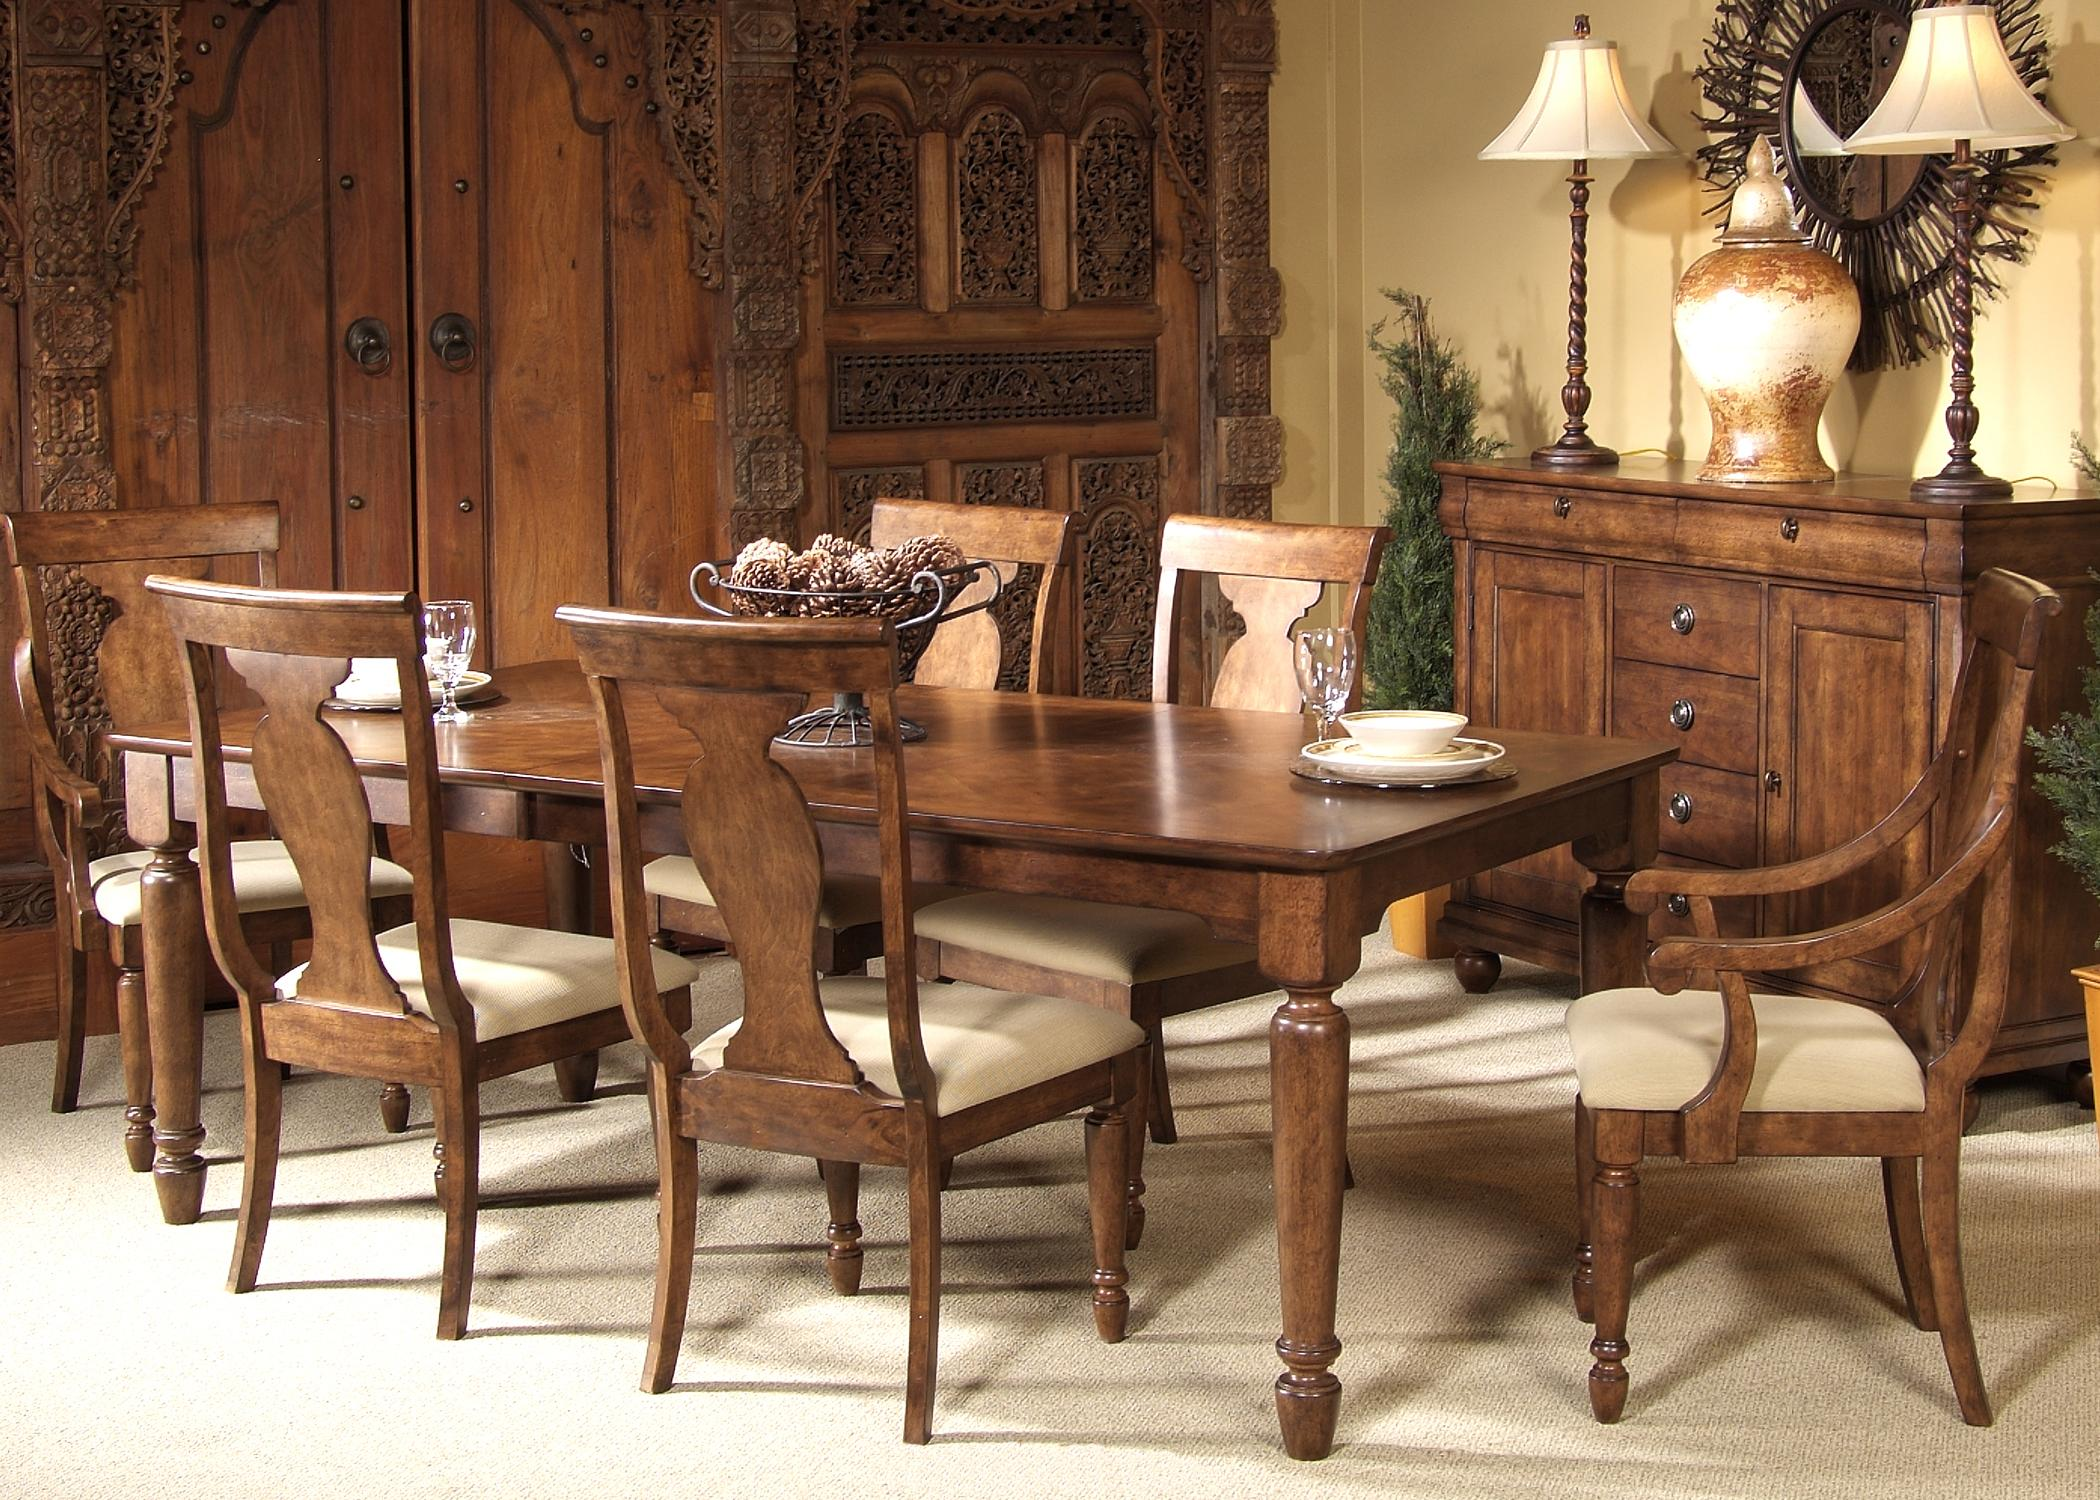 Incroyable Liberty Furniture Rustic Traditions 7 Piece Rectangular Table Set   Item  Number: 589